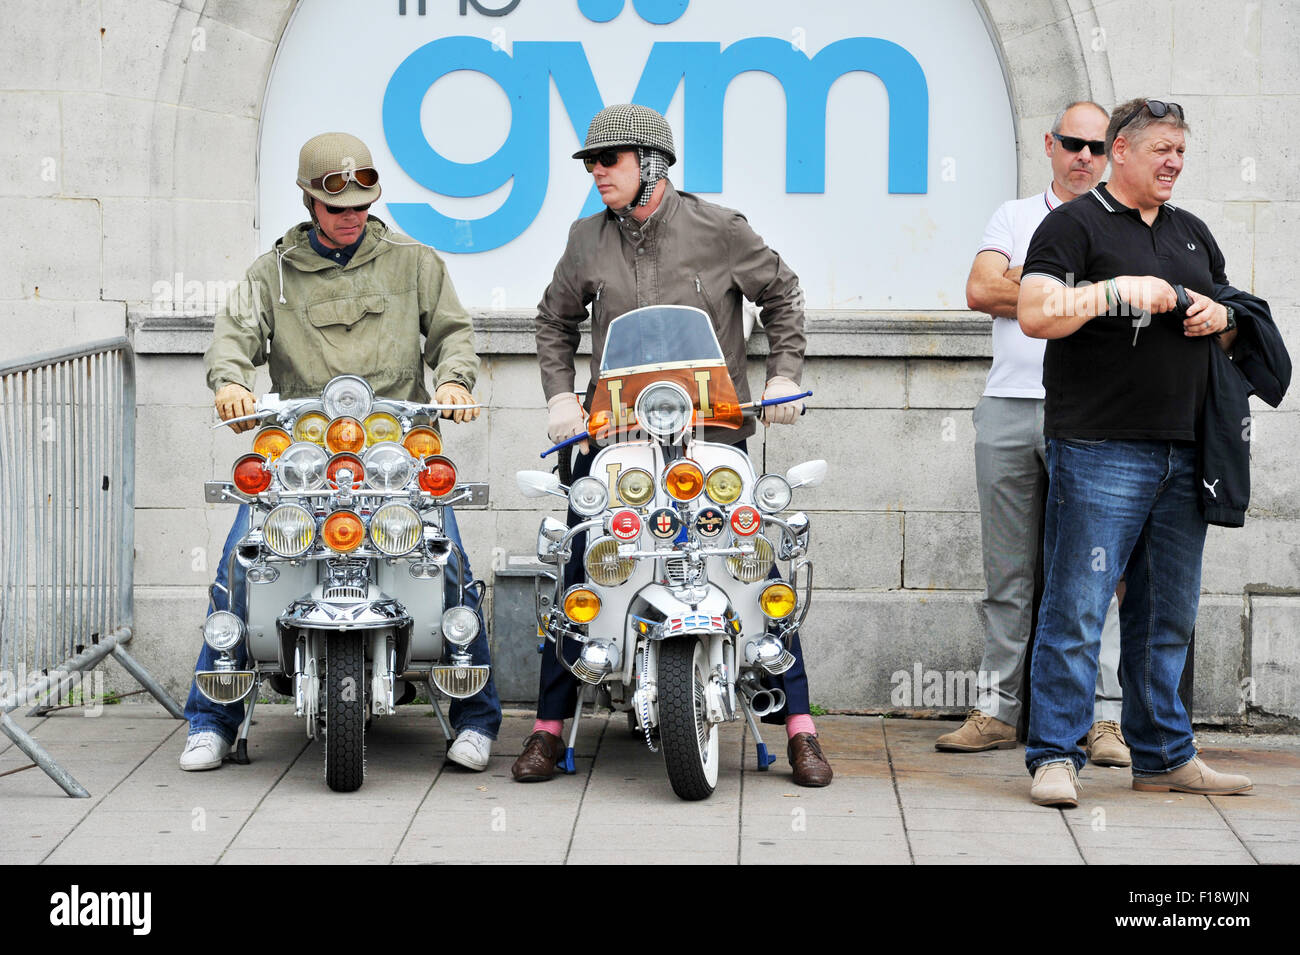 Brighton Uk 30th August 2015 Mods With Their Scooters